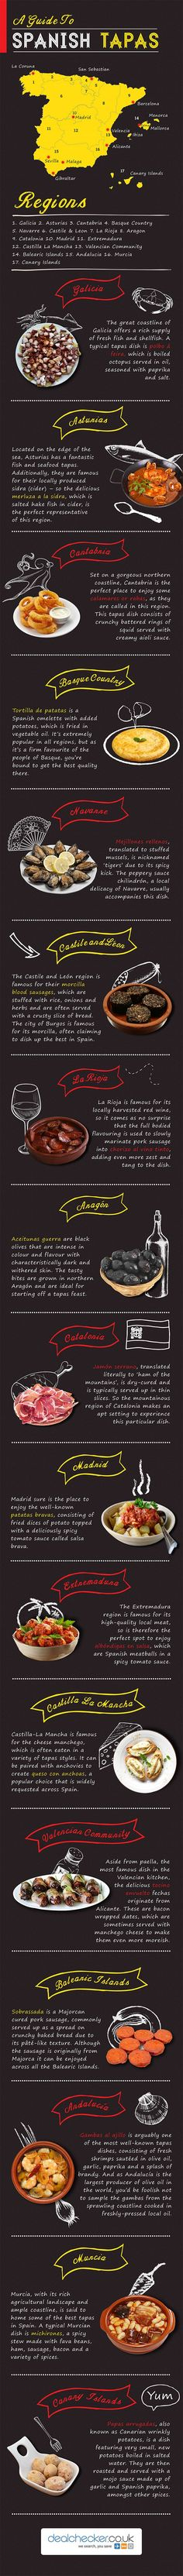 A Guide To Spanish Tapas #infographic #Food #SpanishTapas